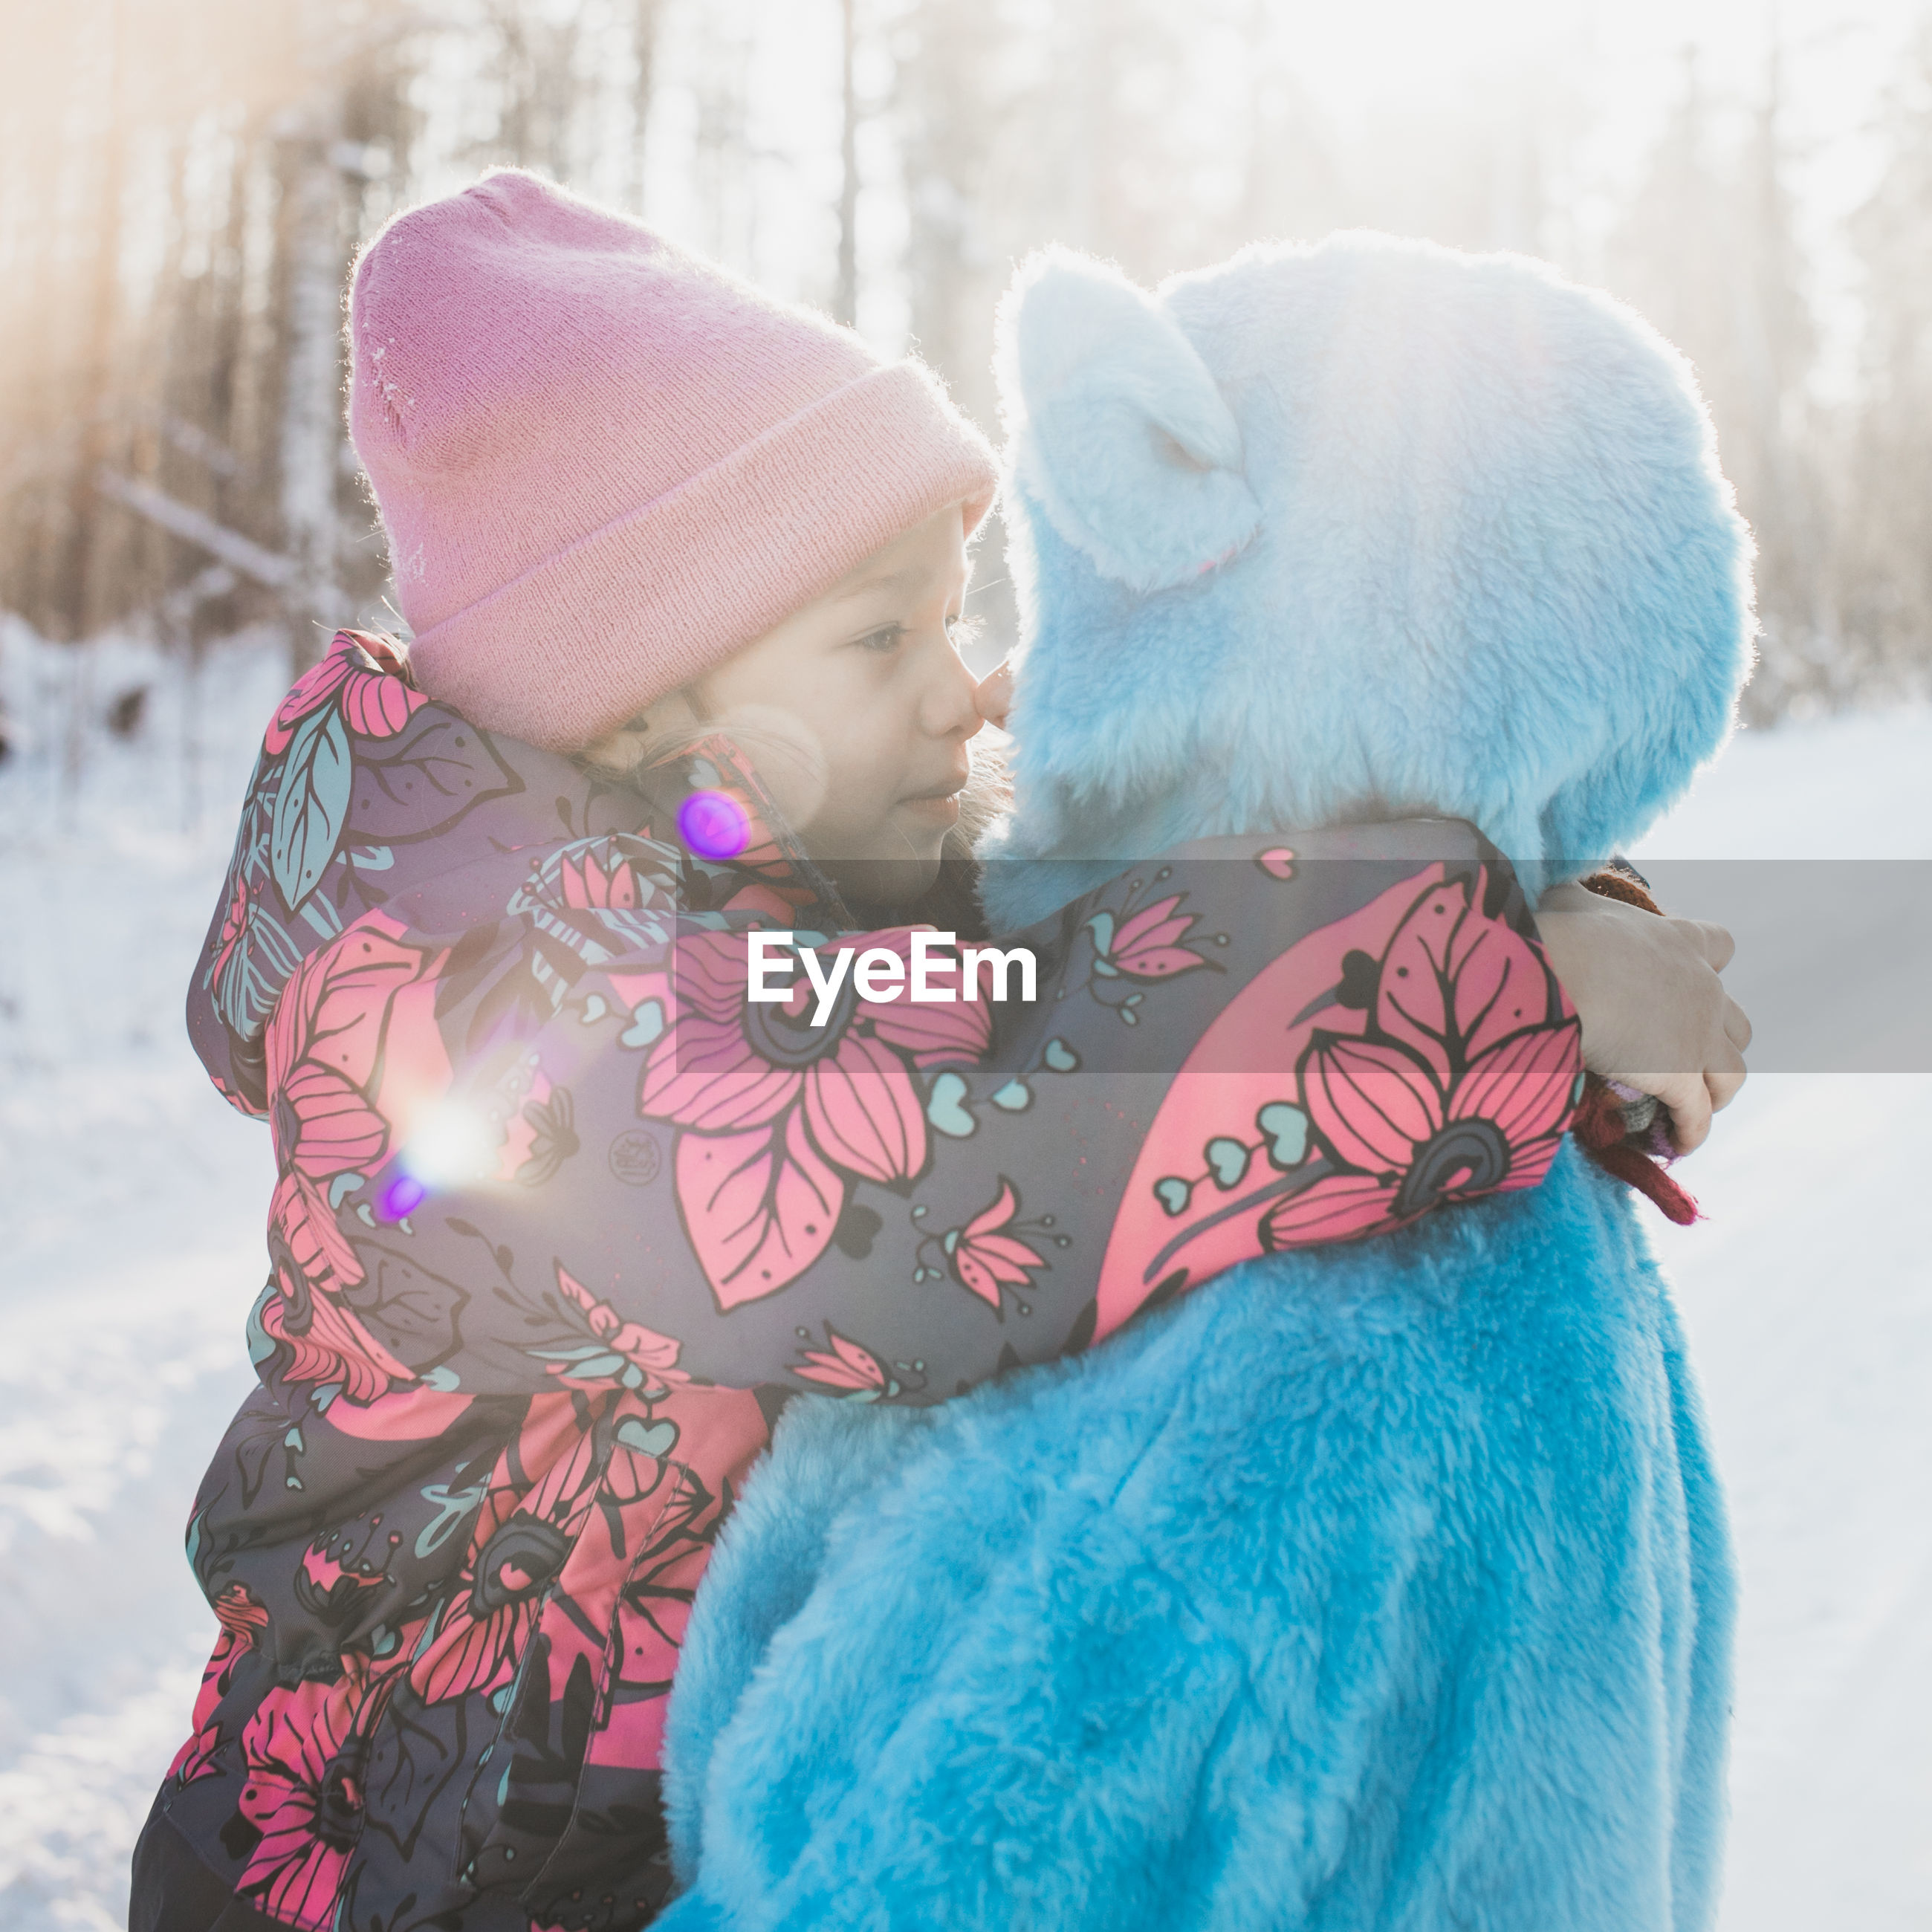 Father wearing costume with daughter on snowy field